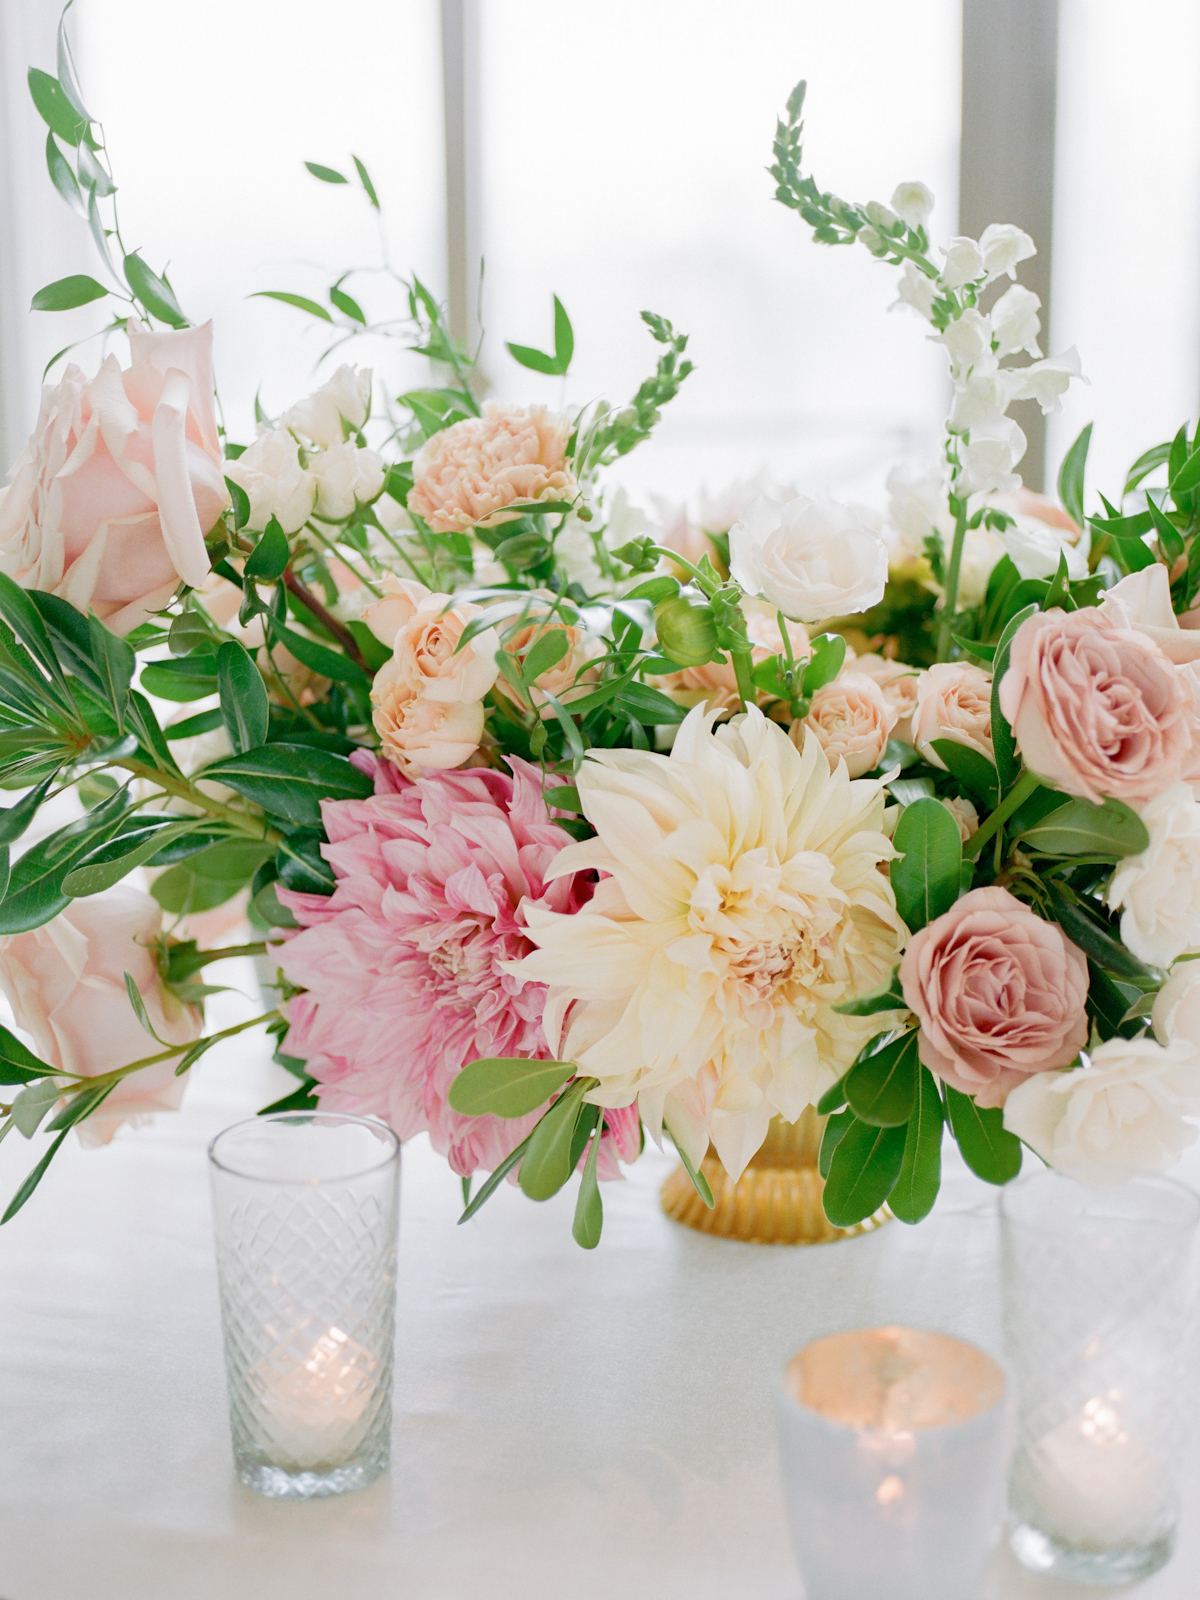 Dahlia and rose centerpiece at Rainbow Room wedding